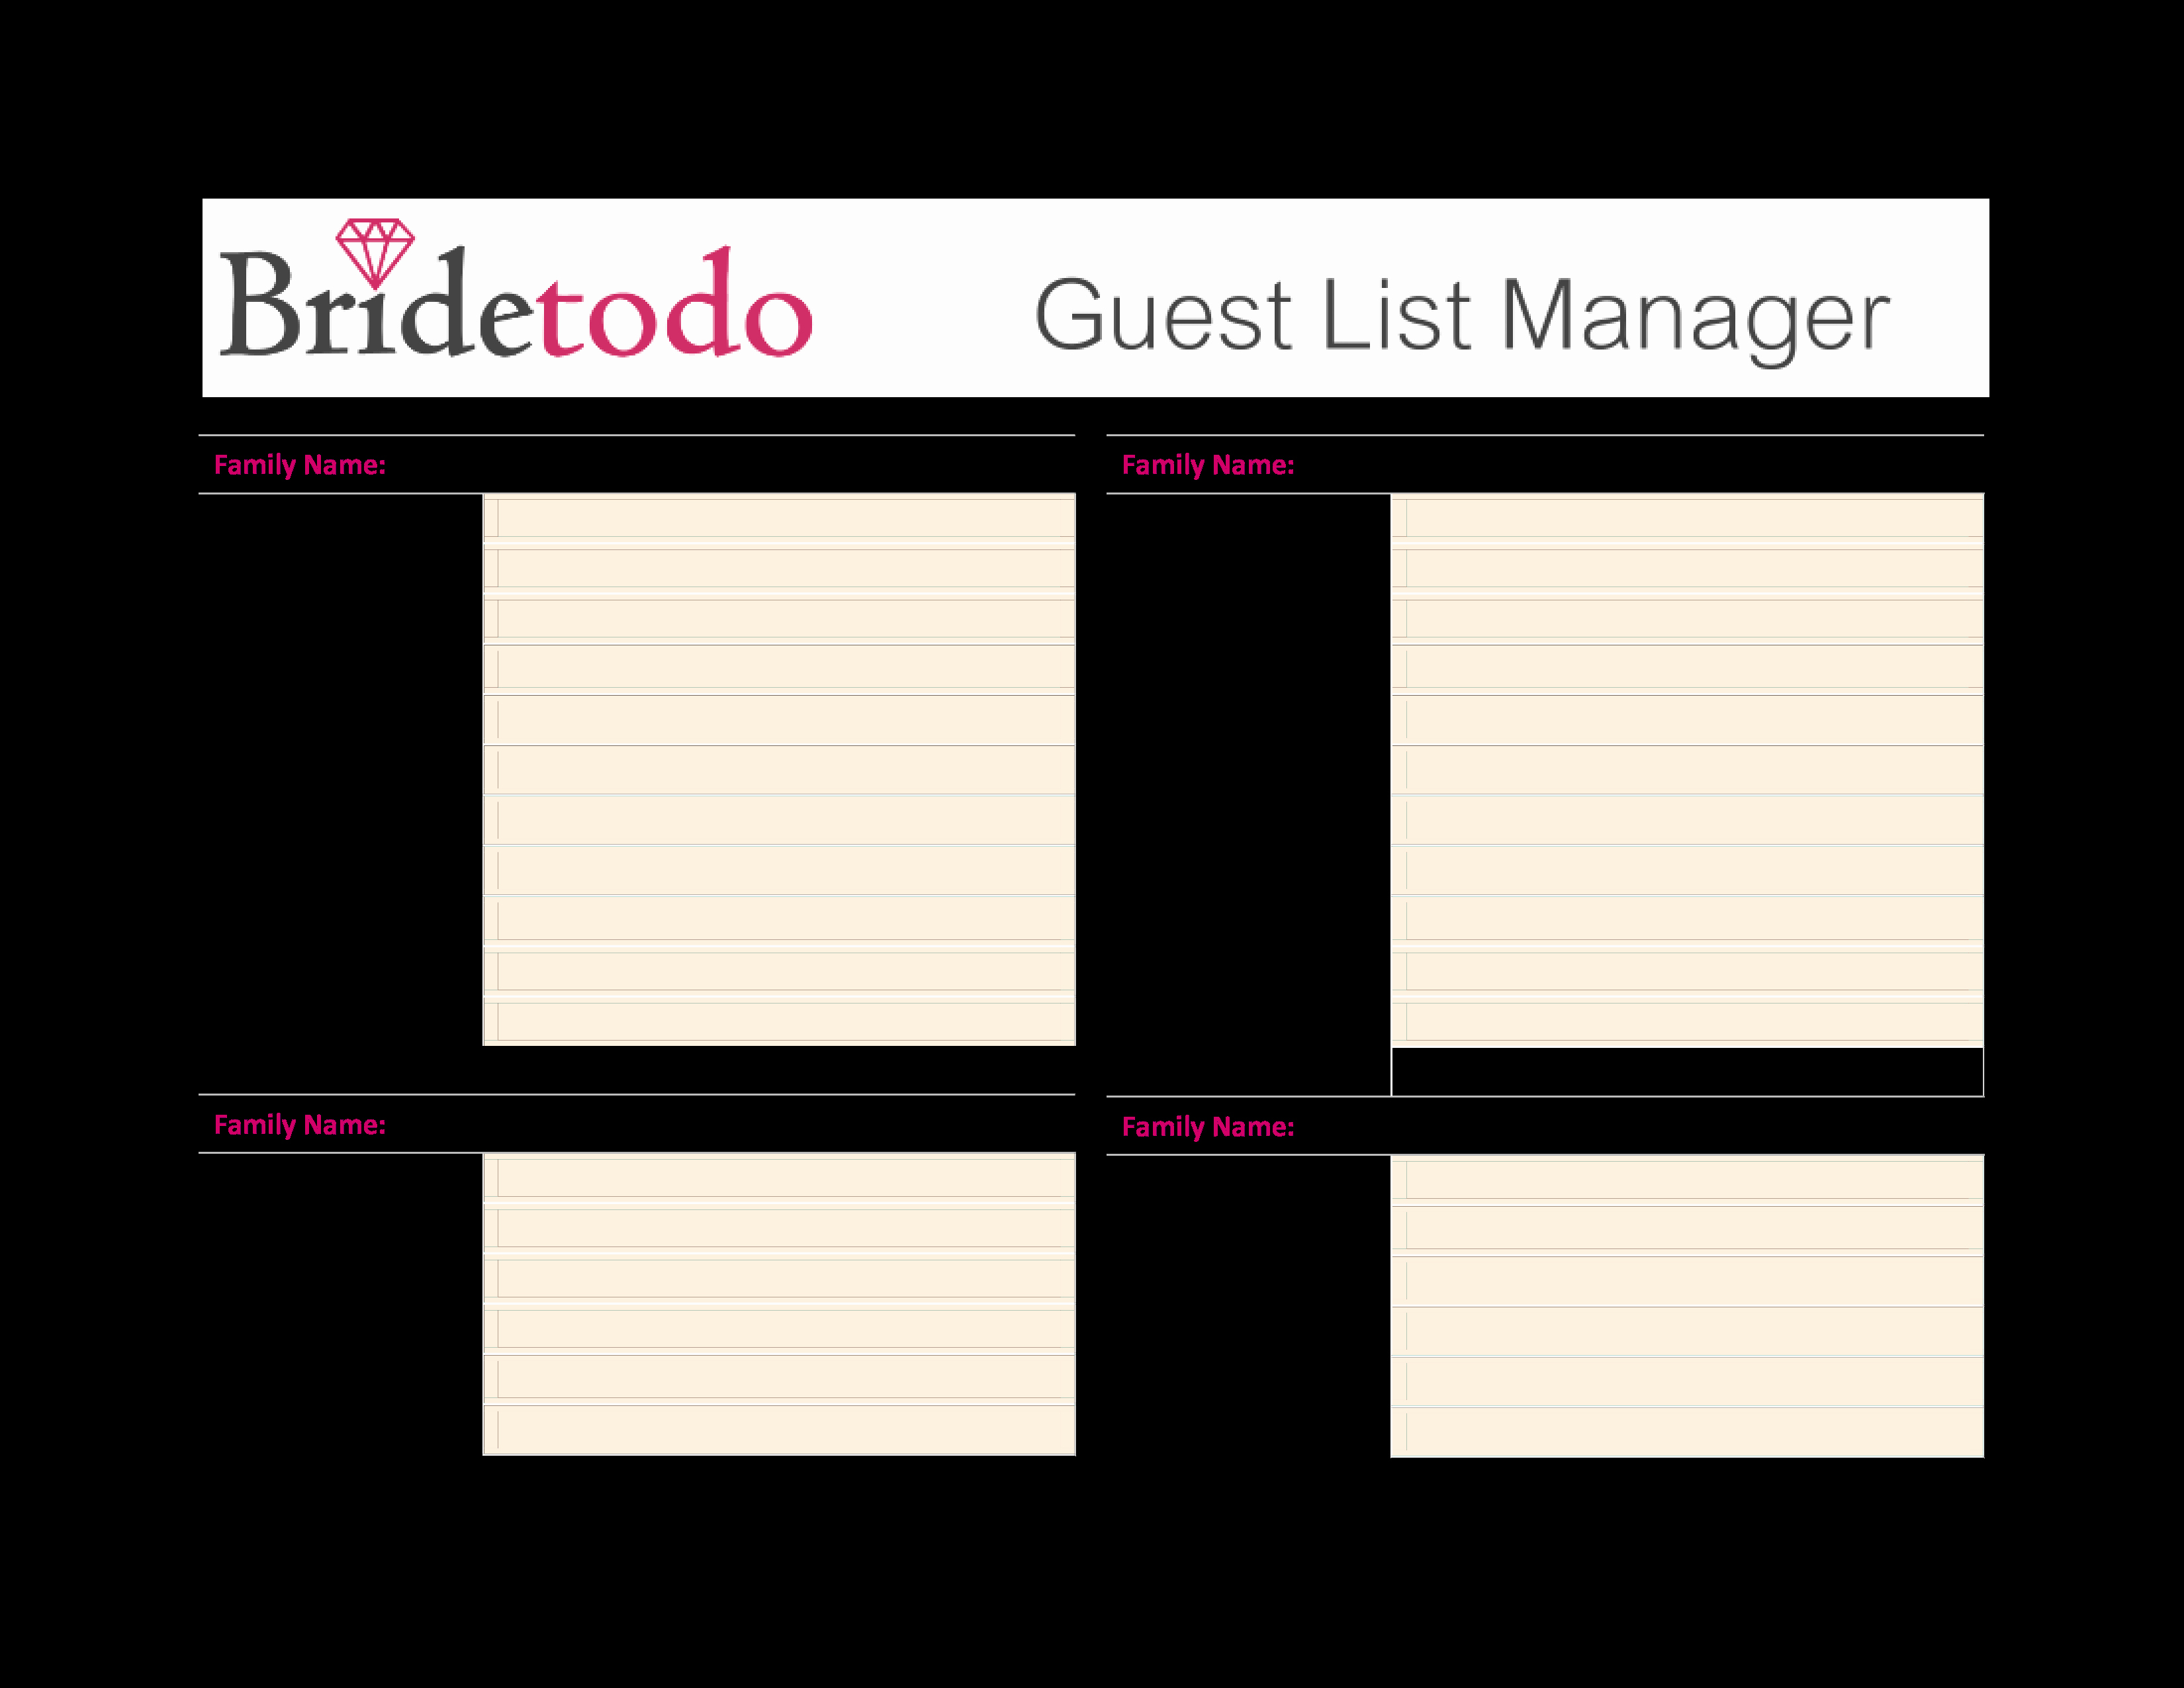 Free Wedding Guest List Template Luxury Guest List Template for Wedding – 35 Beautiful